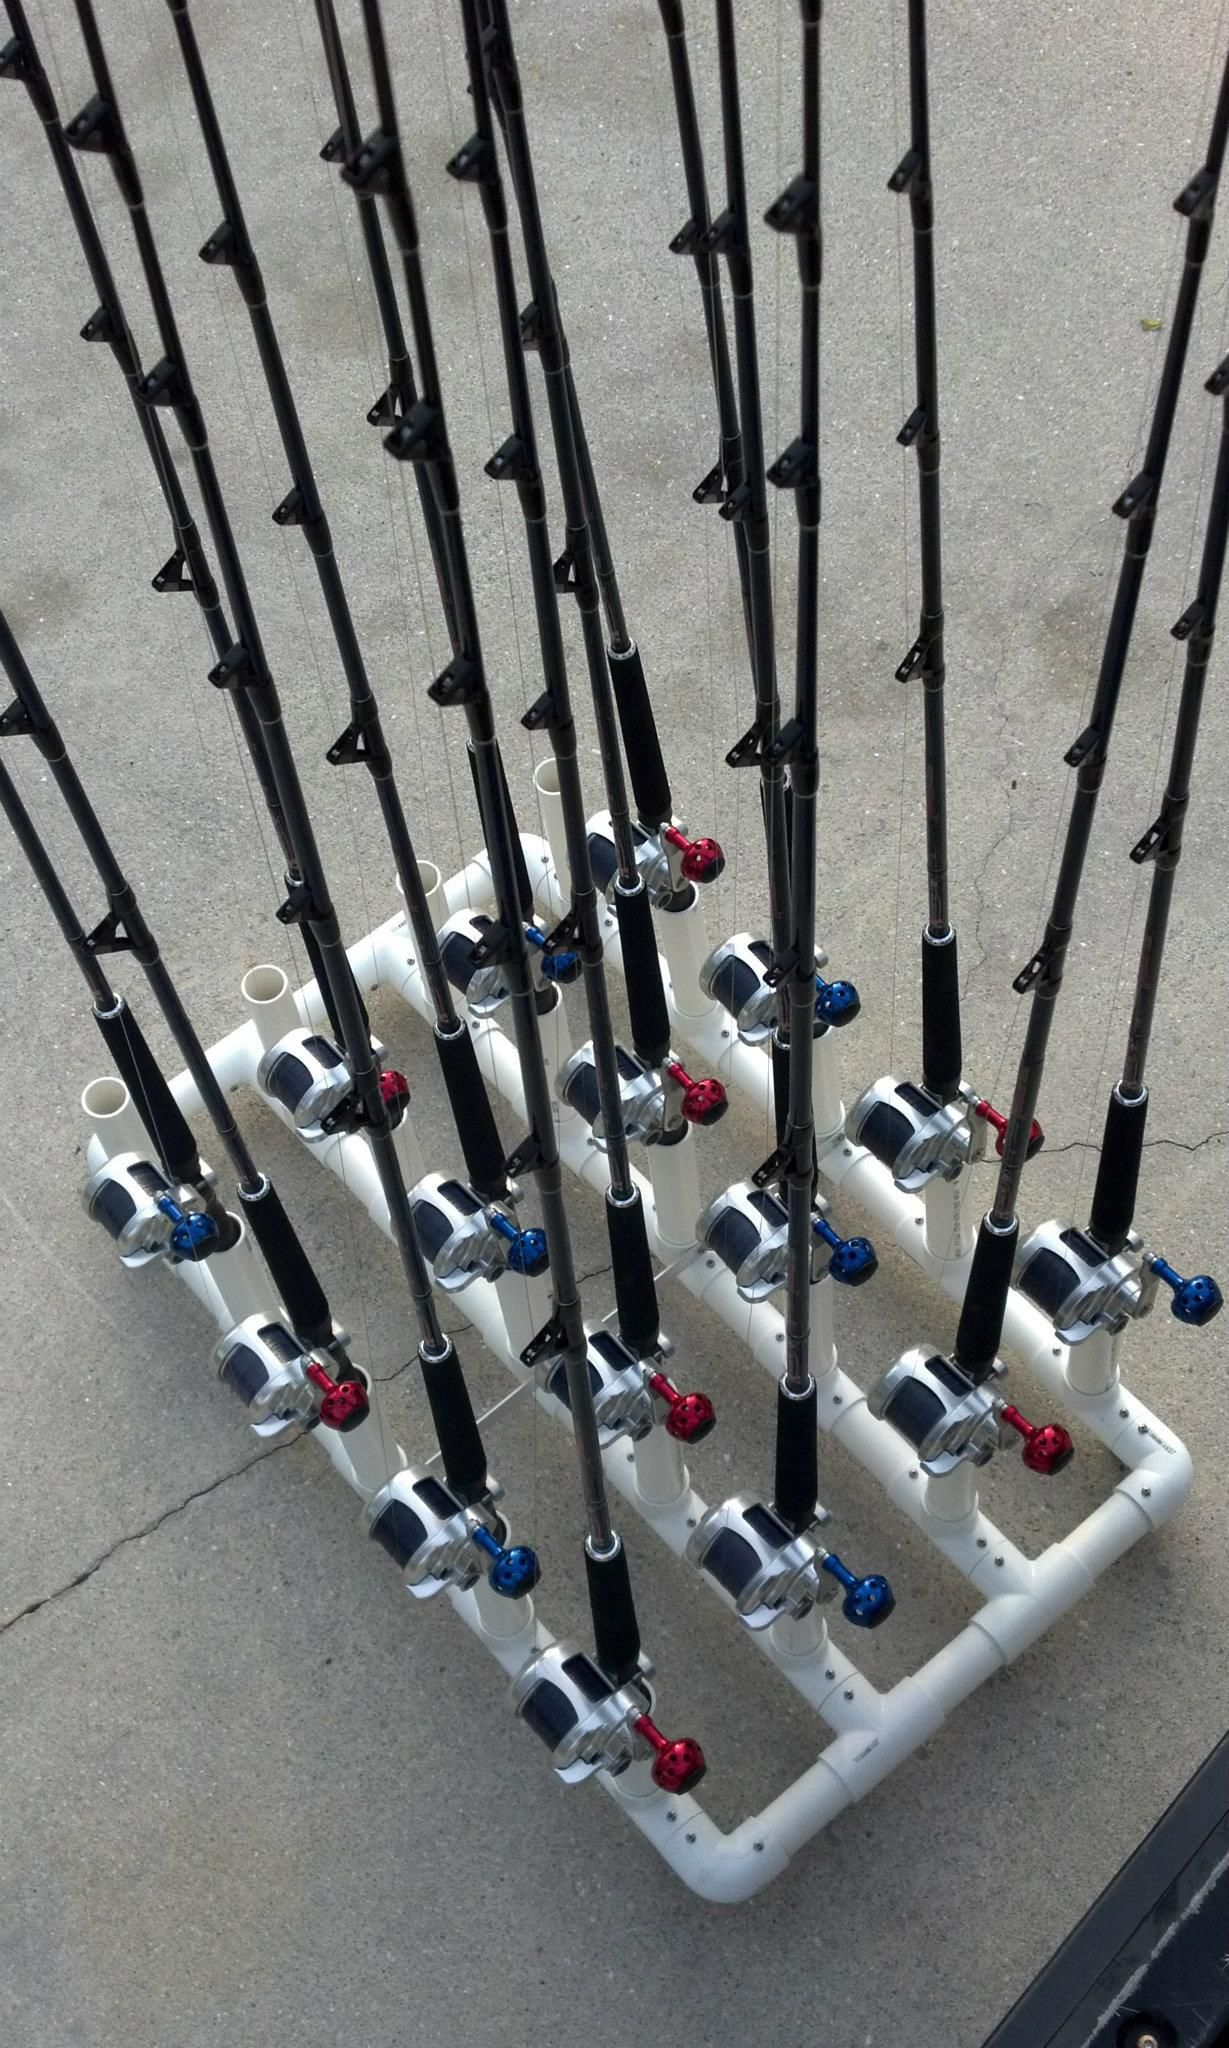 Pvc fishing rod holder ideas fishing rod holder for Fishing pole holders for boats